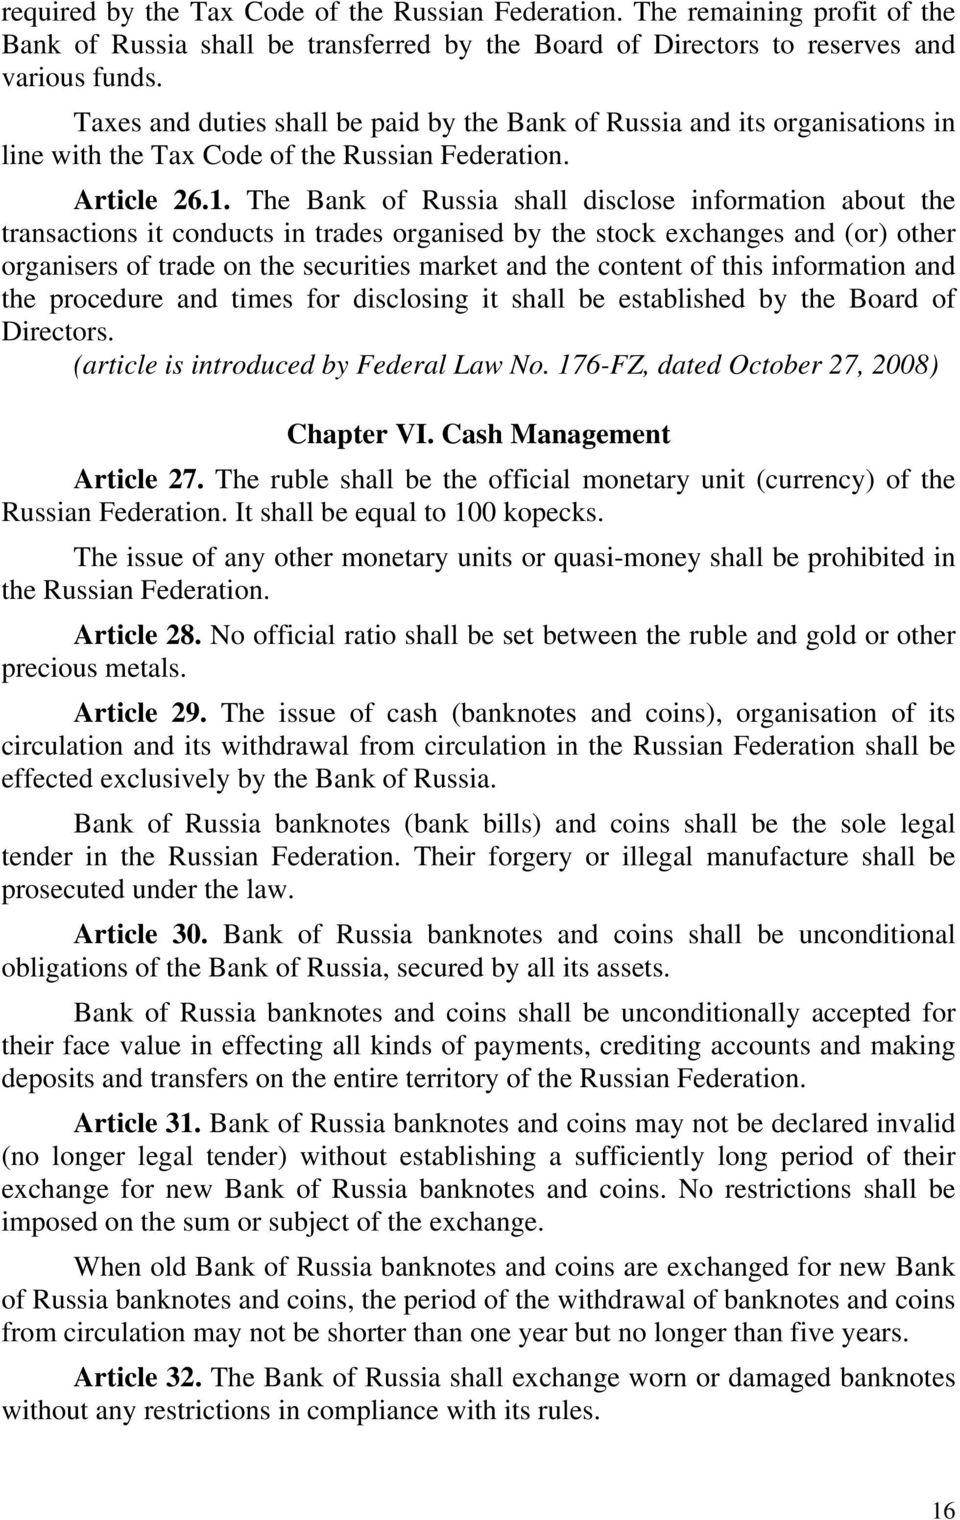 The Bank of Russia shall disclose information about the transactions it conducts in trades organised by the stock exchanges and (or) other organisers of trade on the securities market and the content